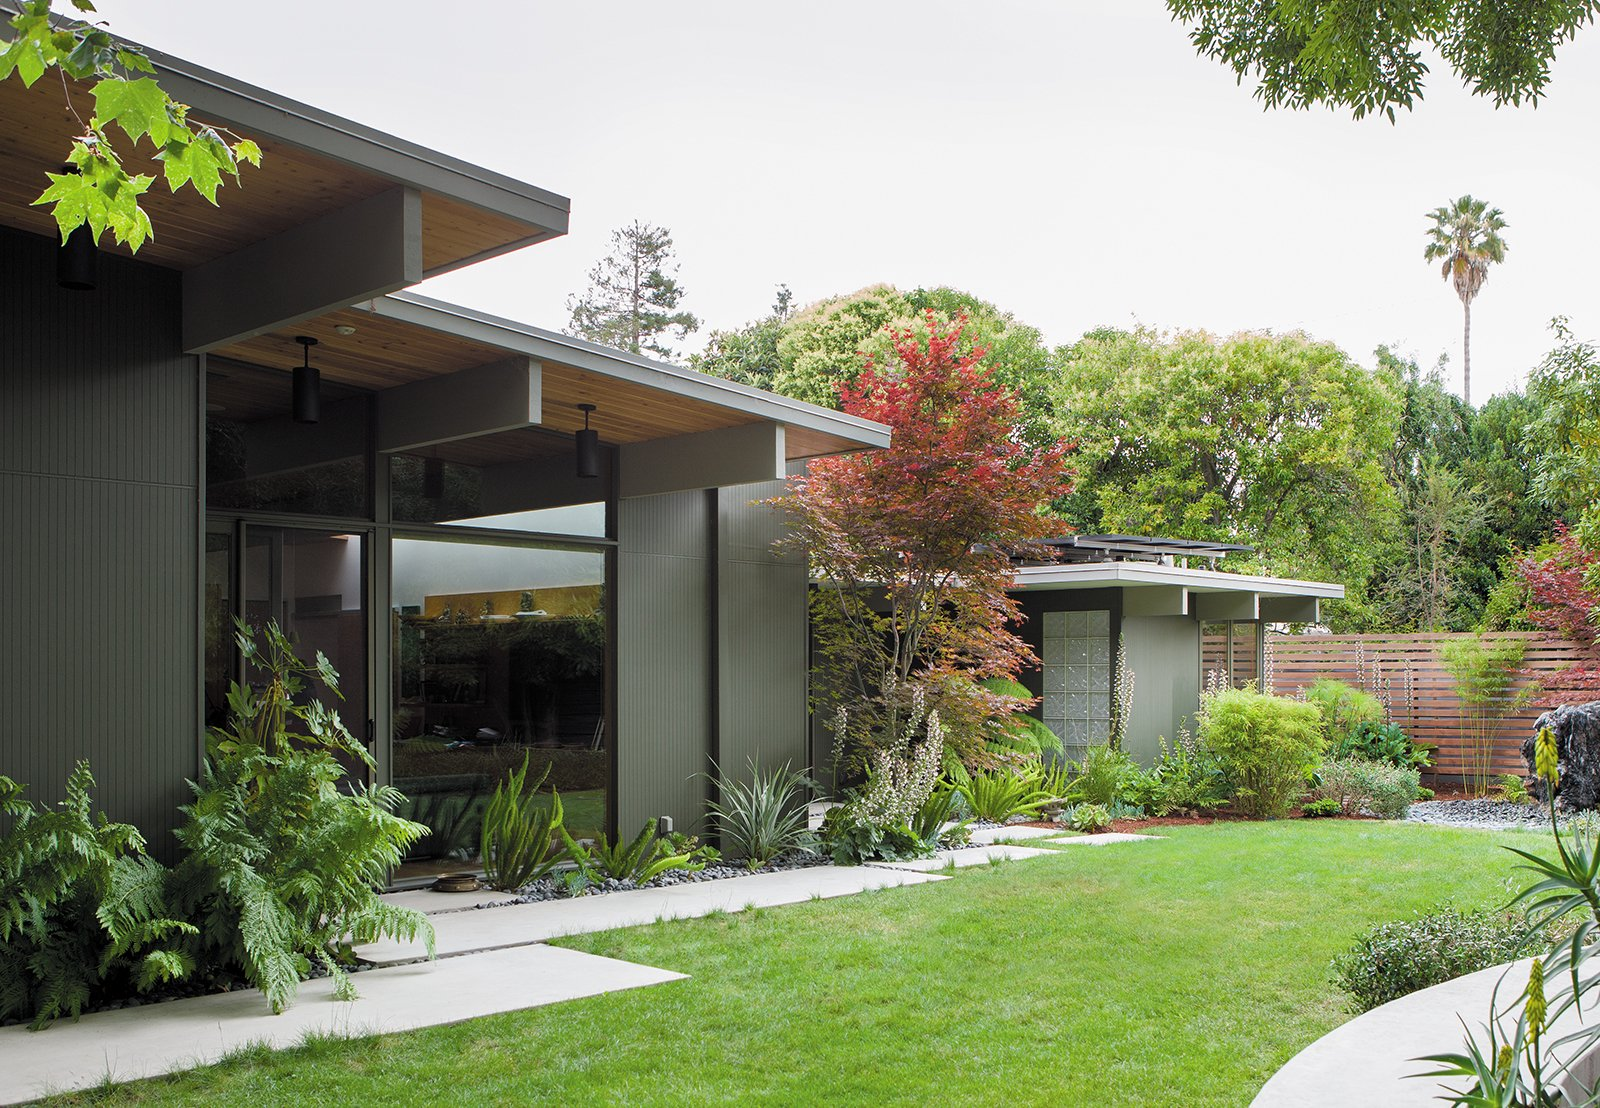 House Building Type, Wood Siding Material, Outdoor, Grass, Walkways, and Concrete Patio, Porch, Deck In the back, ferns and other shade-friendly plants thrive beneath the home's deep overhangs.  Photo 3 of 9 in Creative Landscape Design for a Renovated Eichler in California